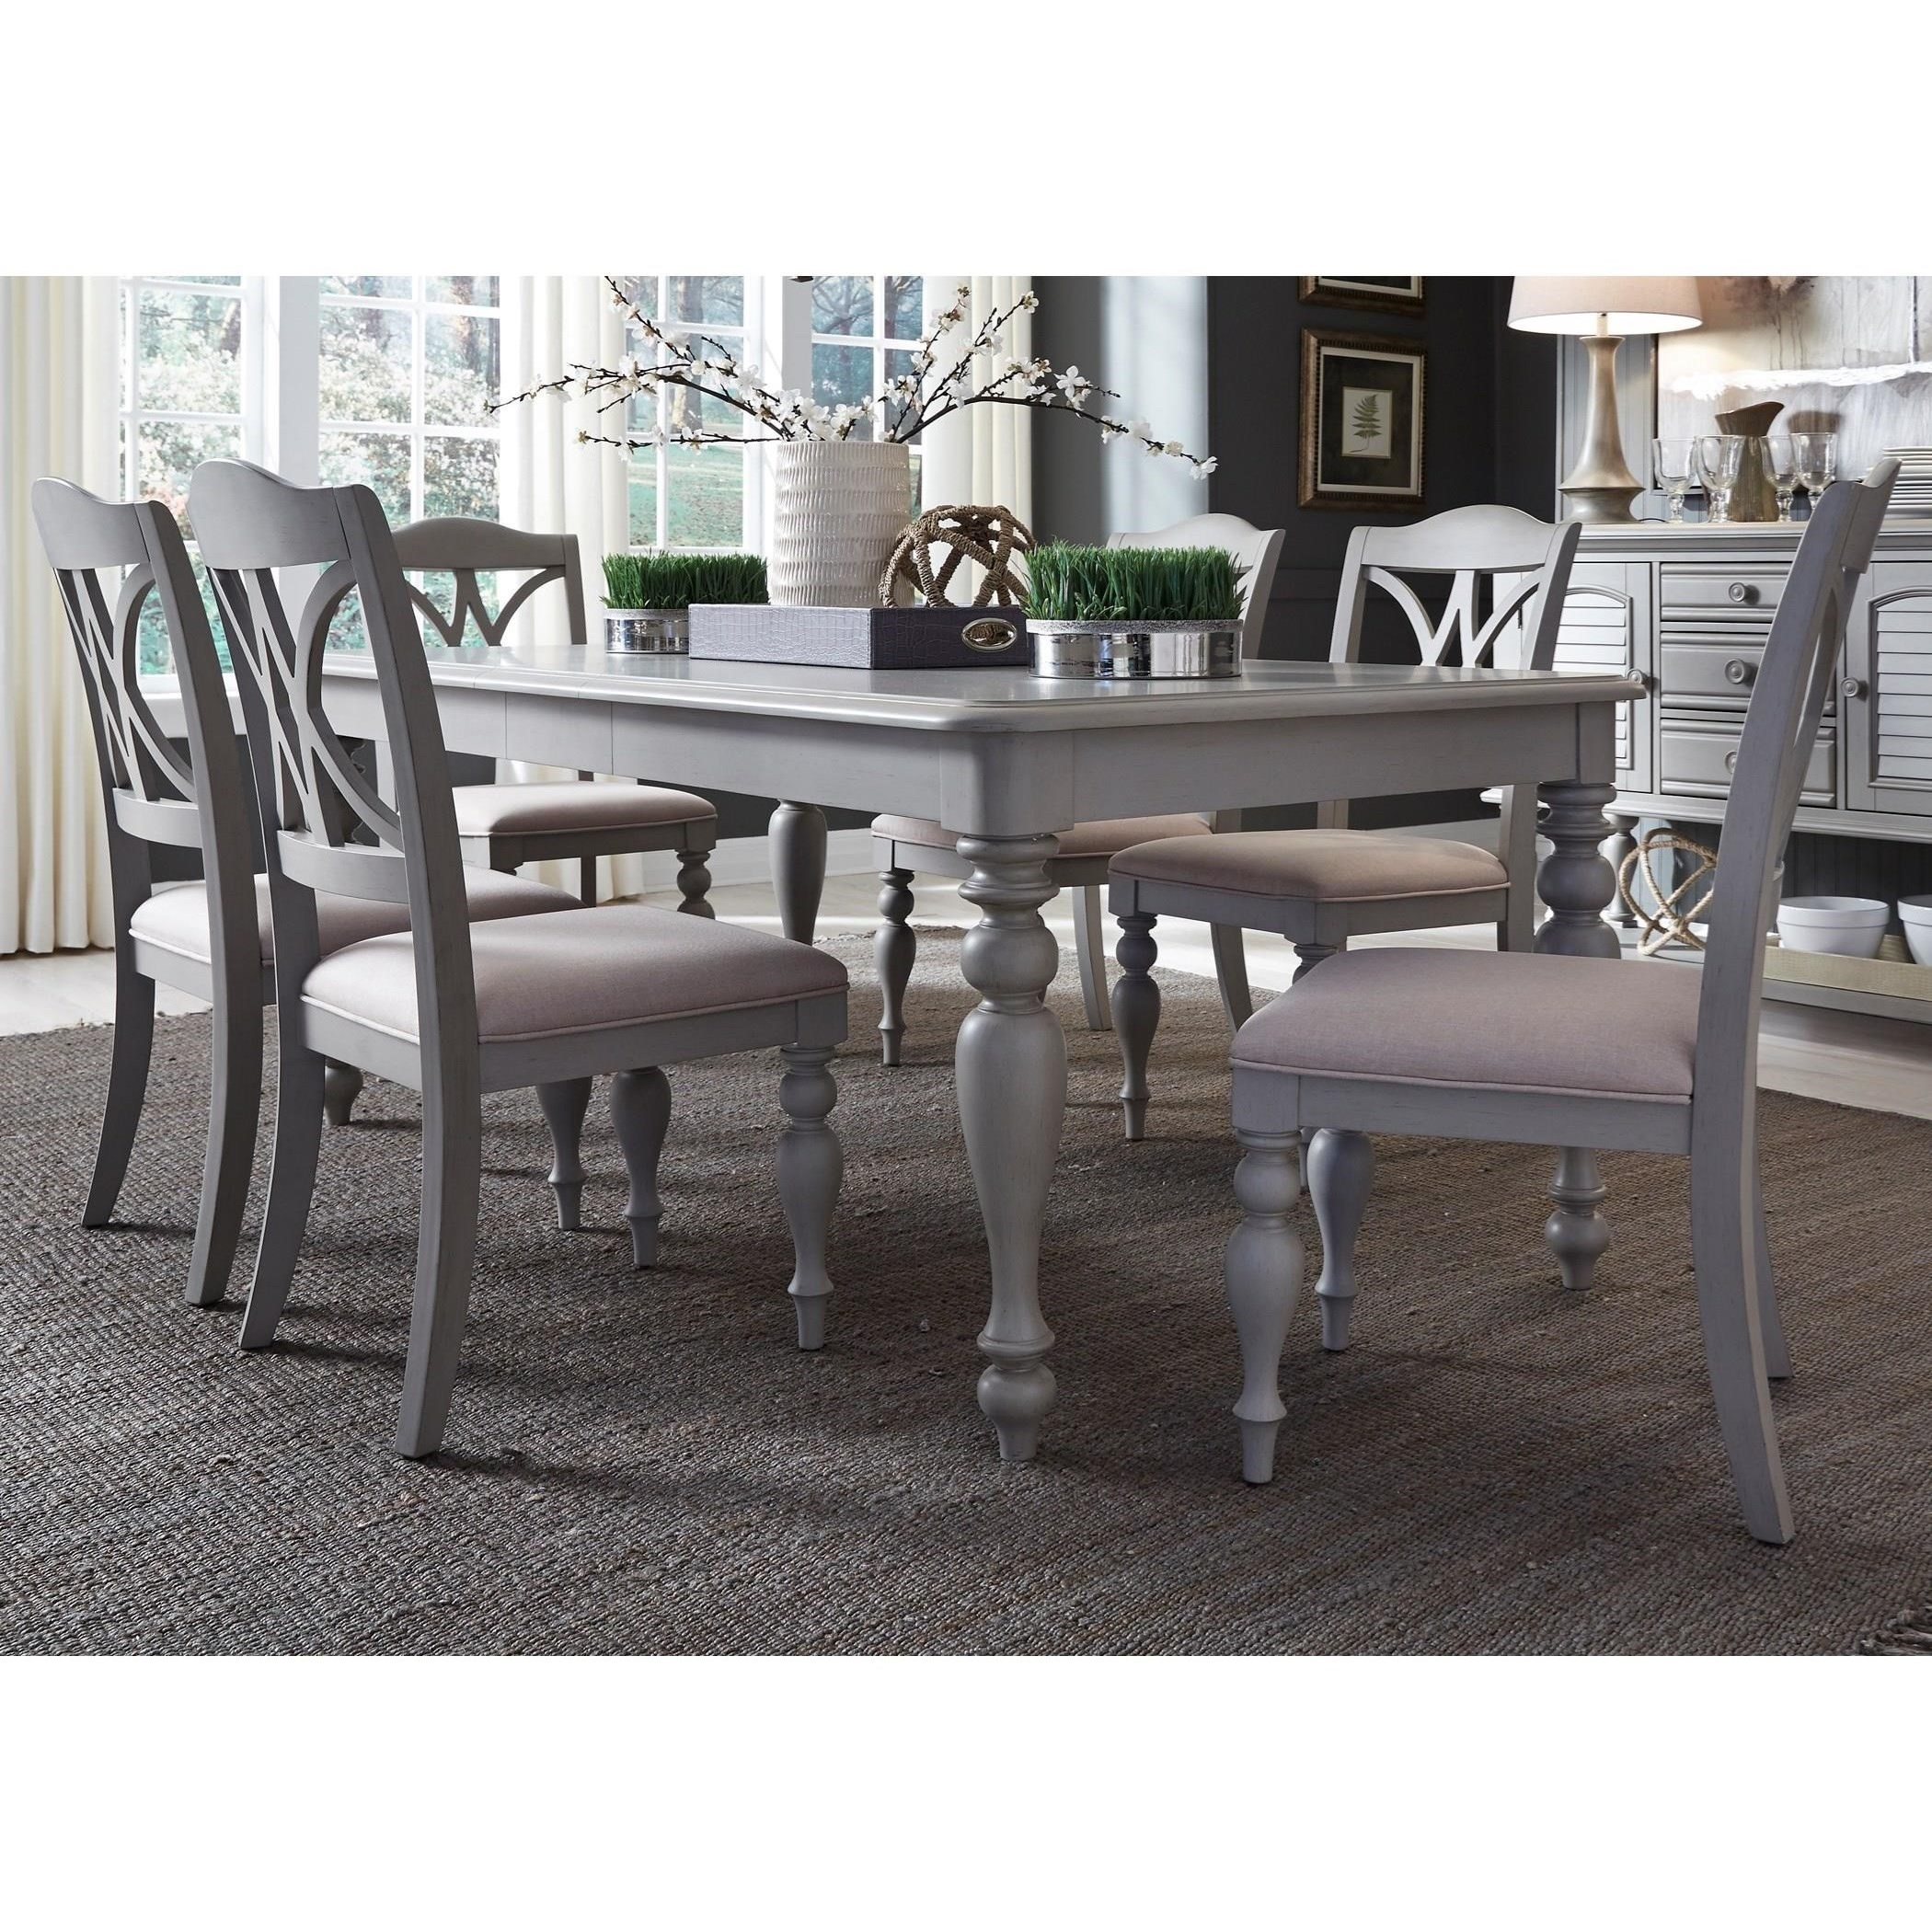 Summer House Dining 7 Piece Rectangular Table Set  by Libby at Walker's Furniture